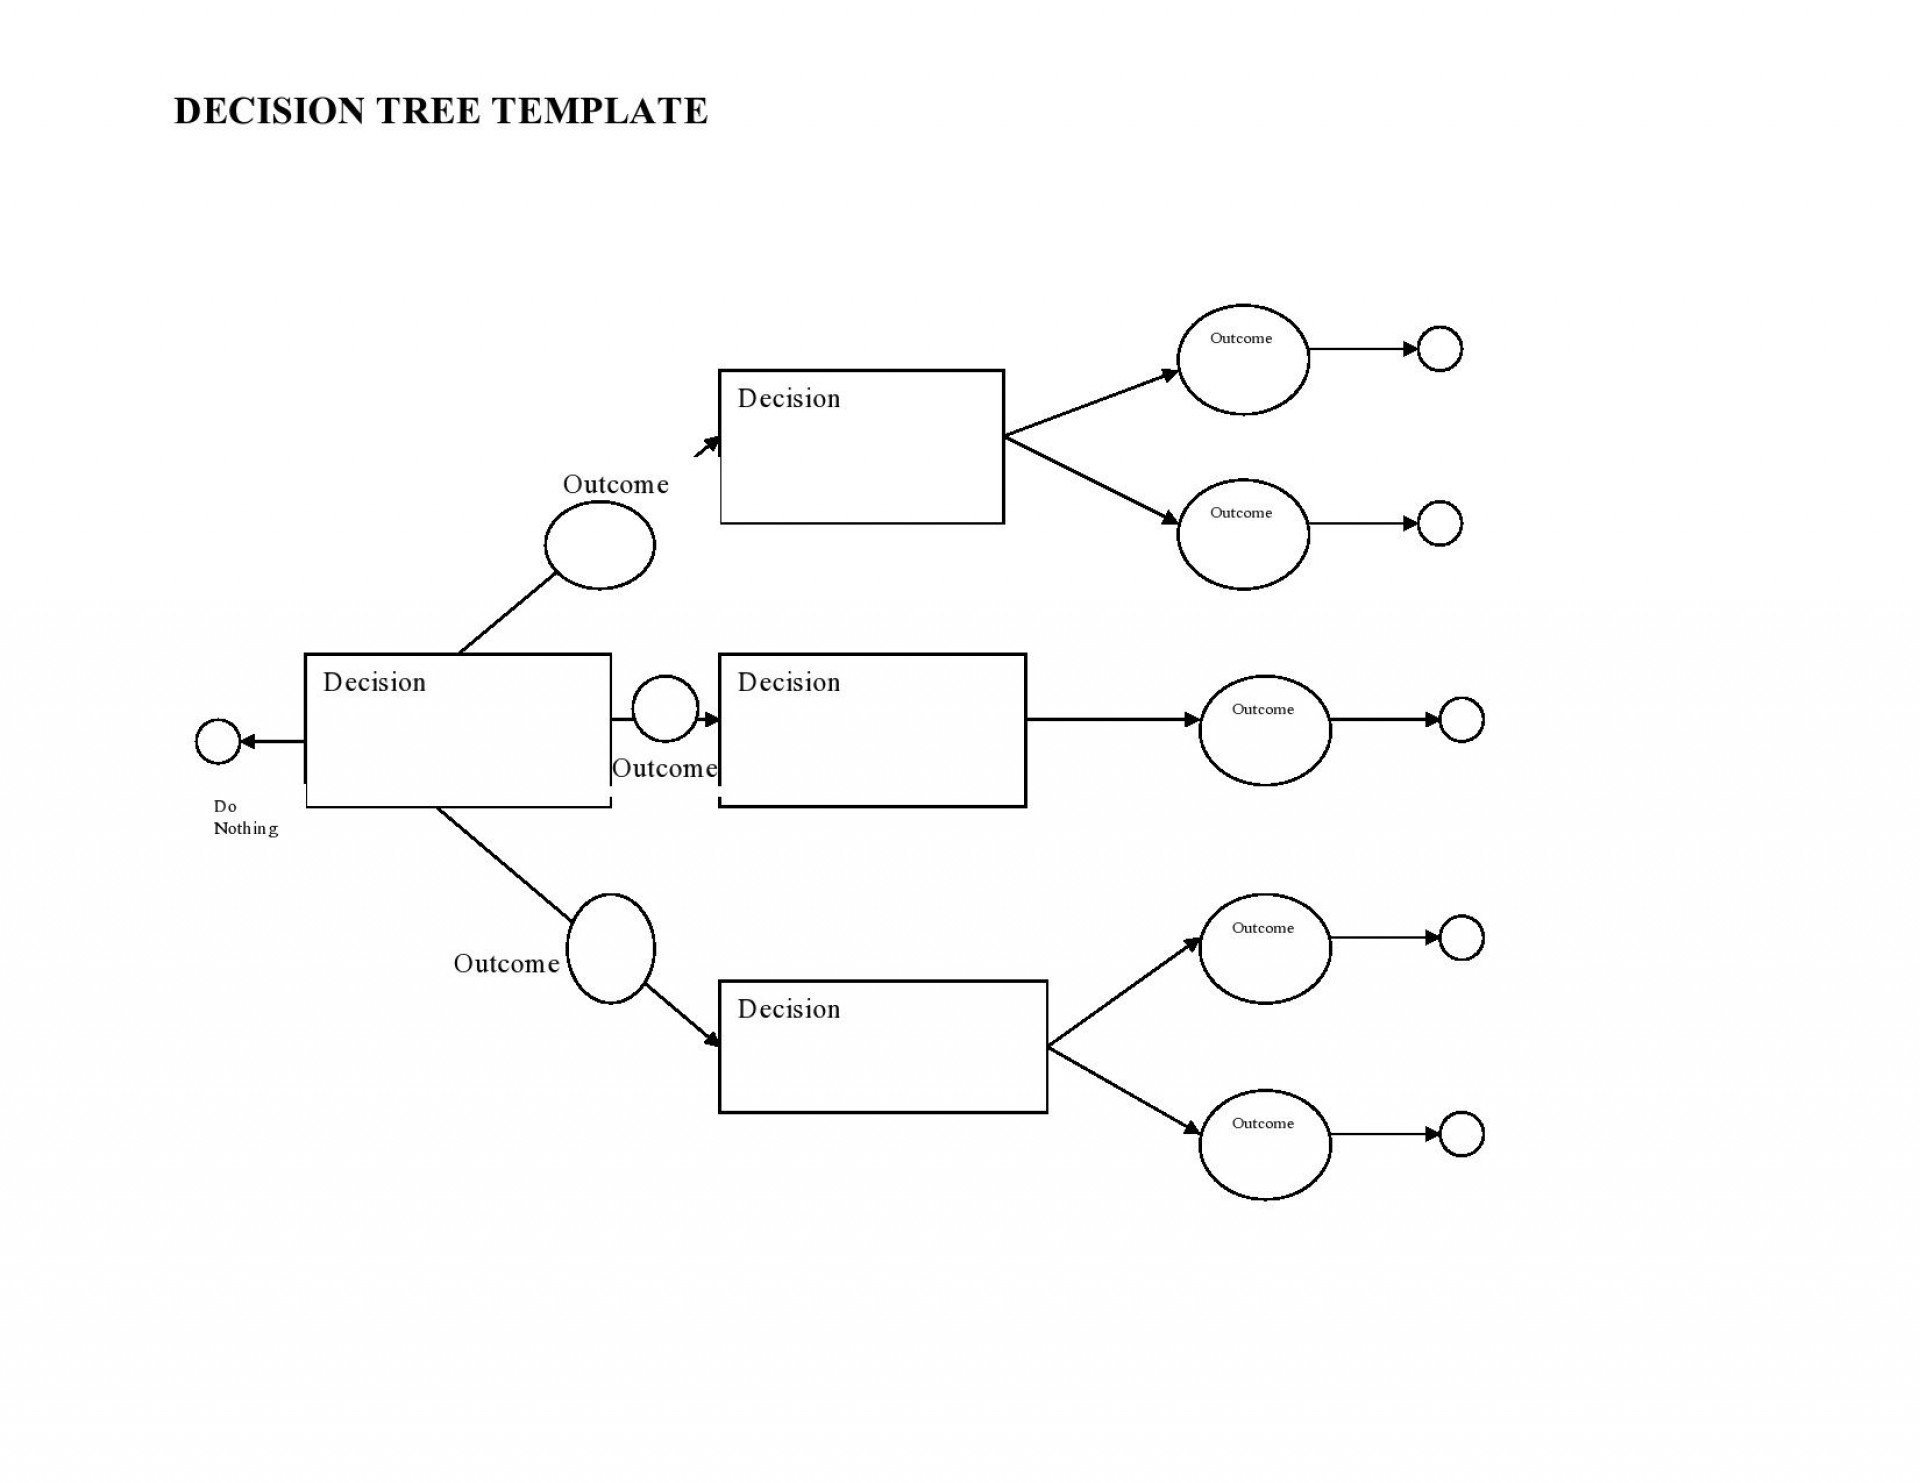 003 Singular Free Decision Tree Template In Word Or Excel Photo 1920